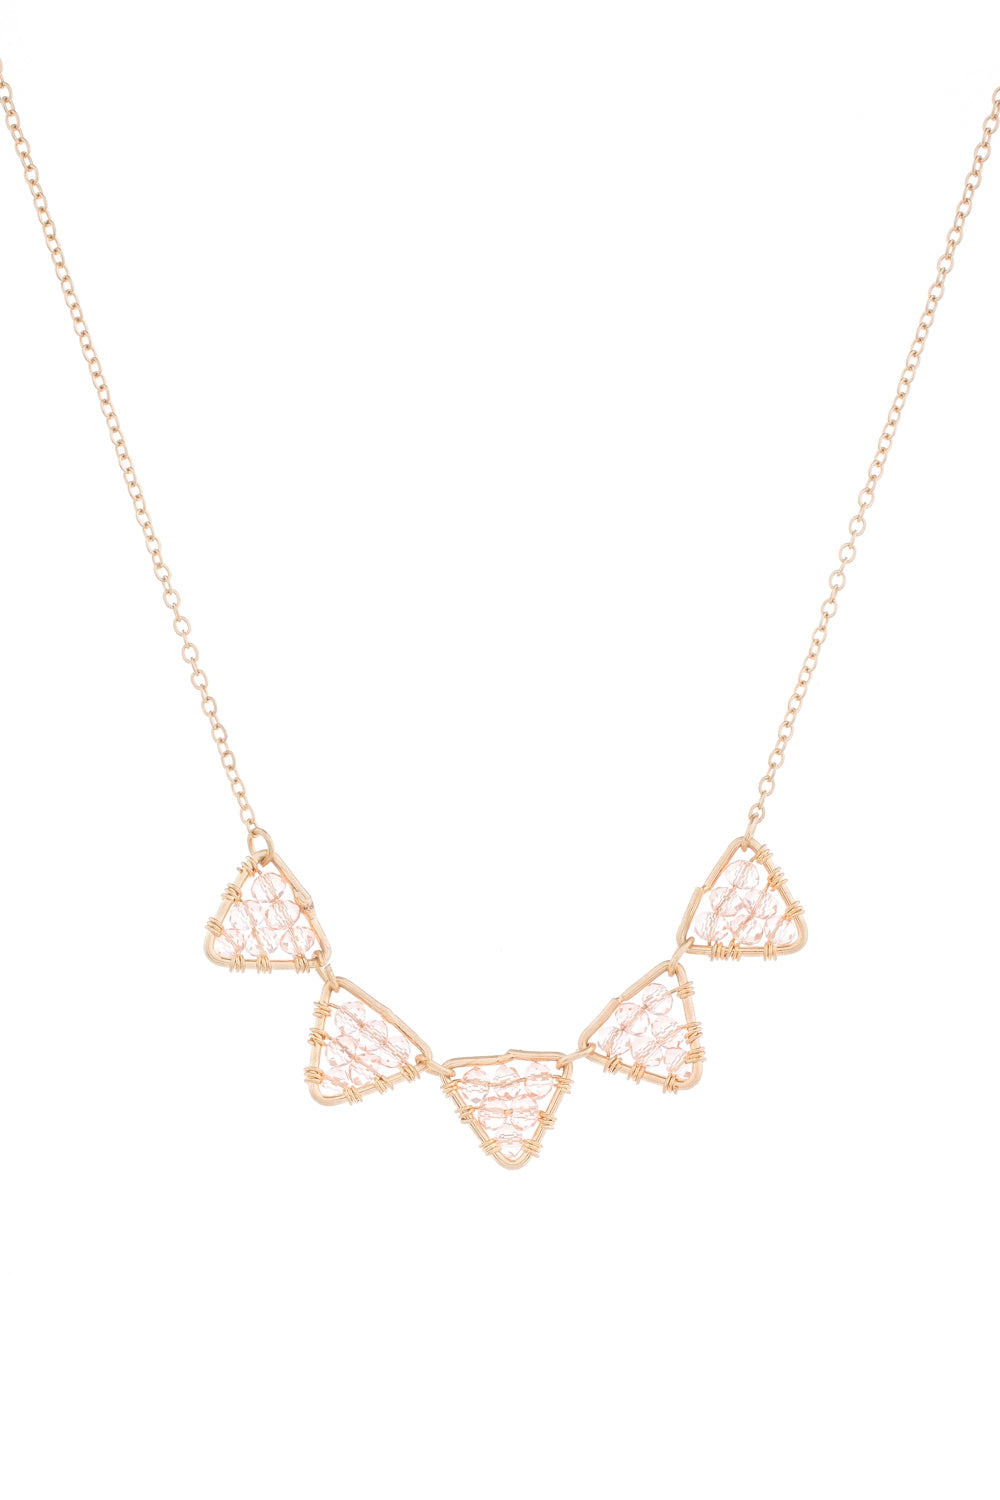 Type 3 Peach Pyramids Necklace